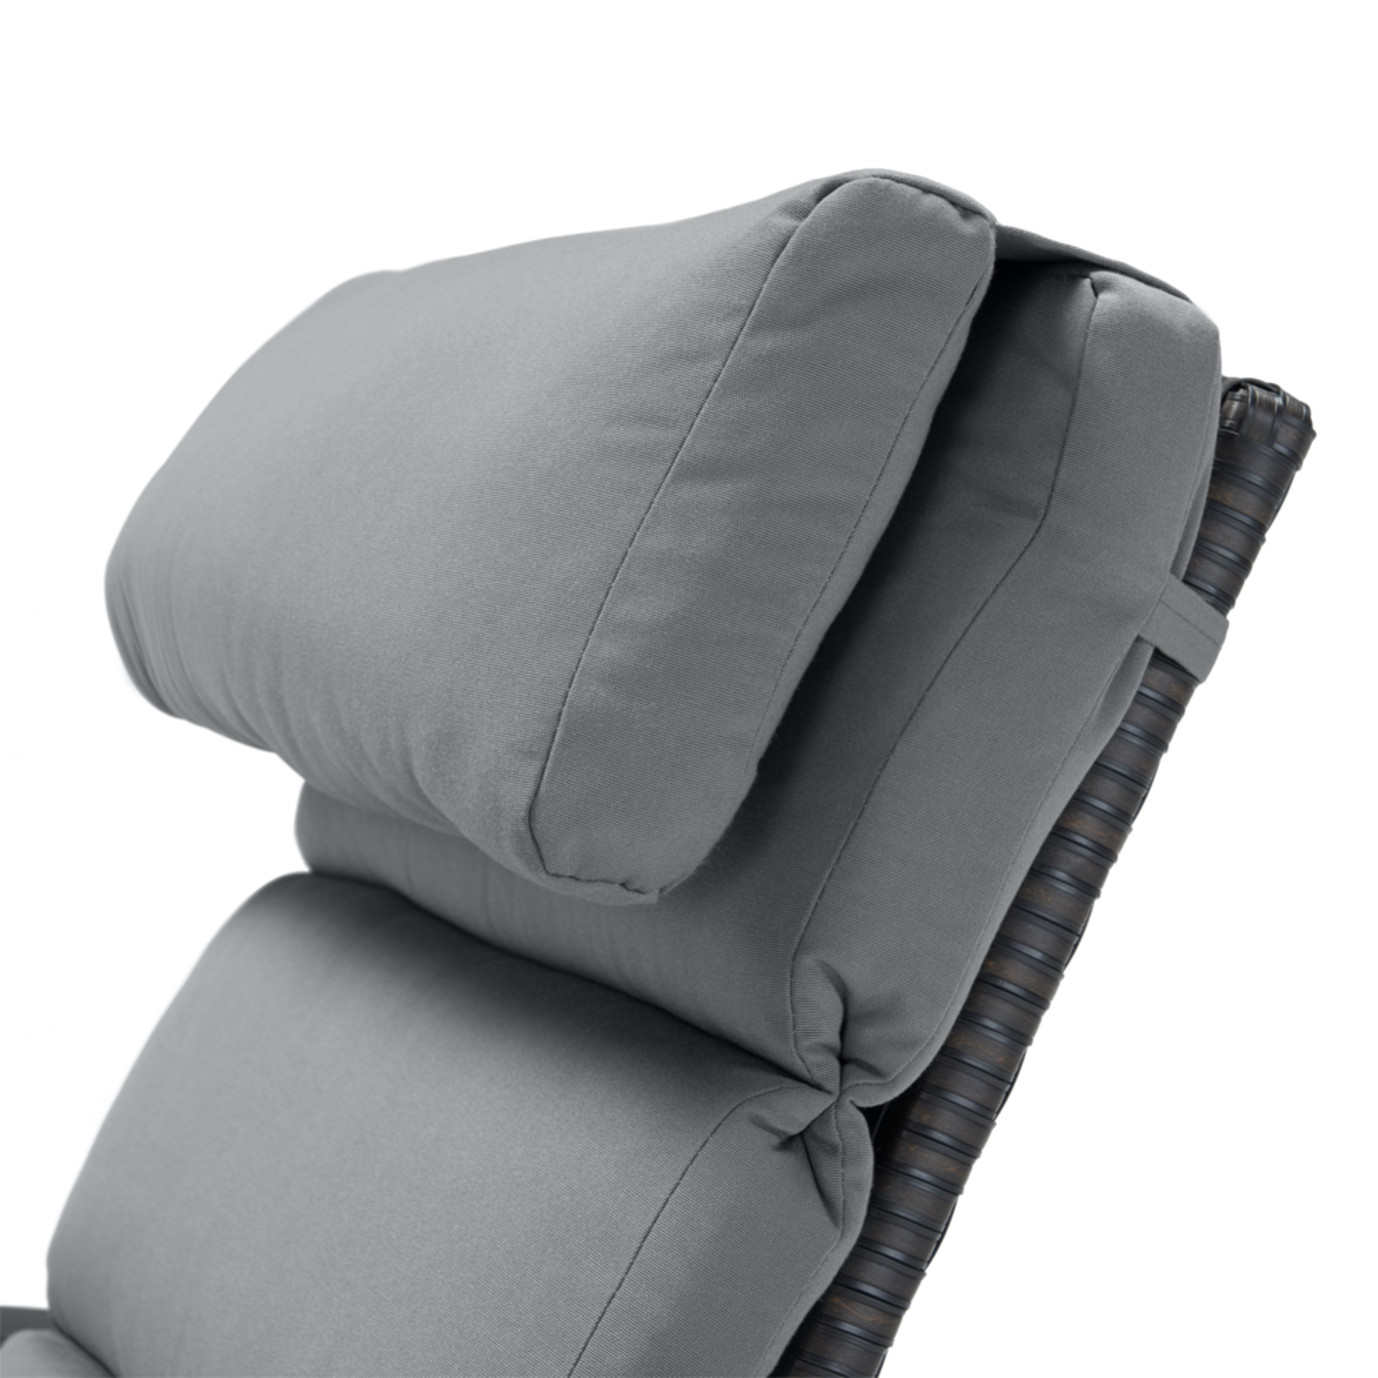 Barcelo™ Chaise Lounge 2pk - Charcoal Gray